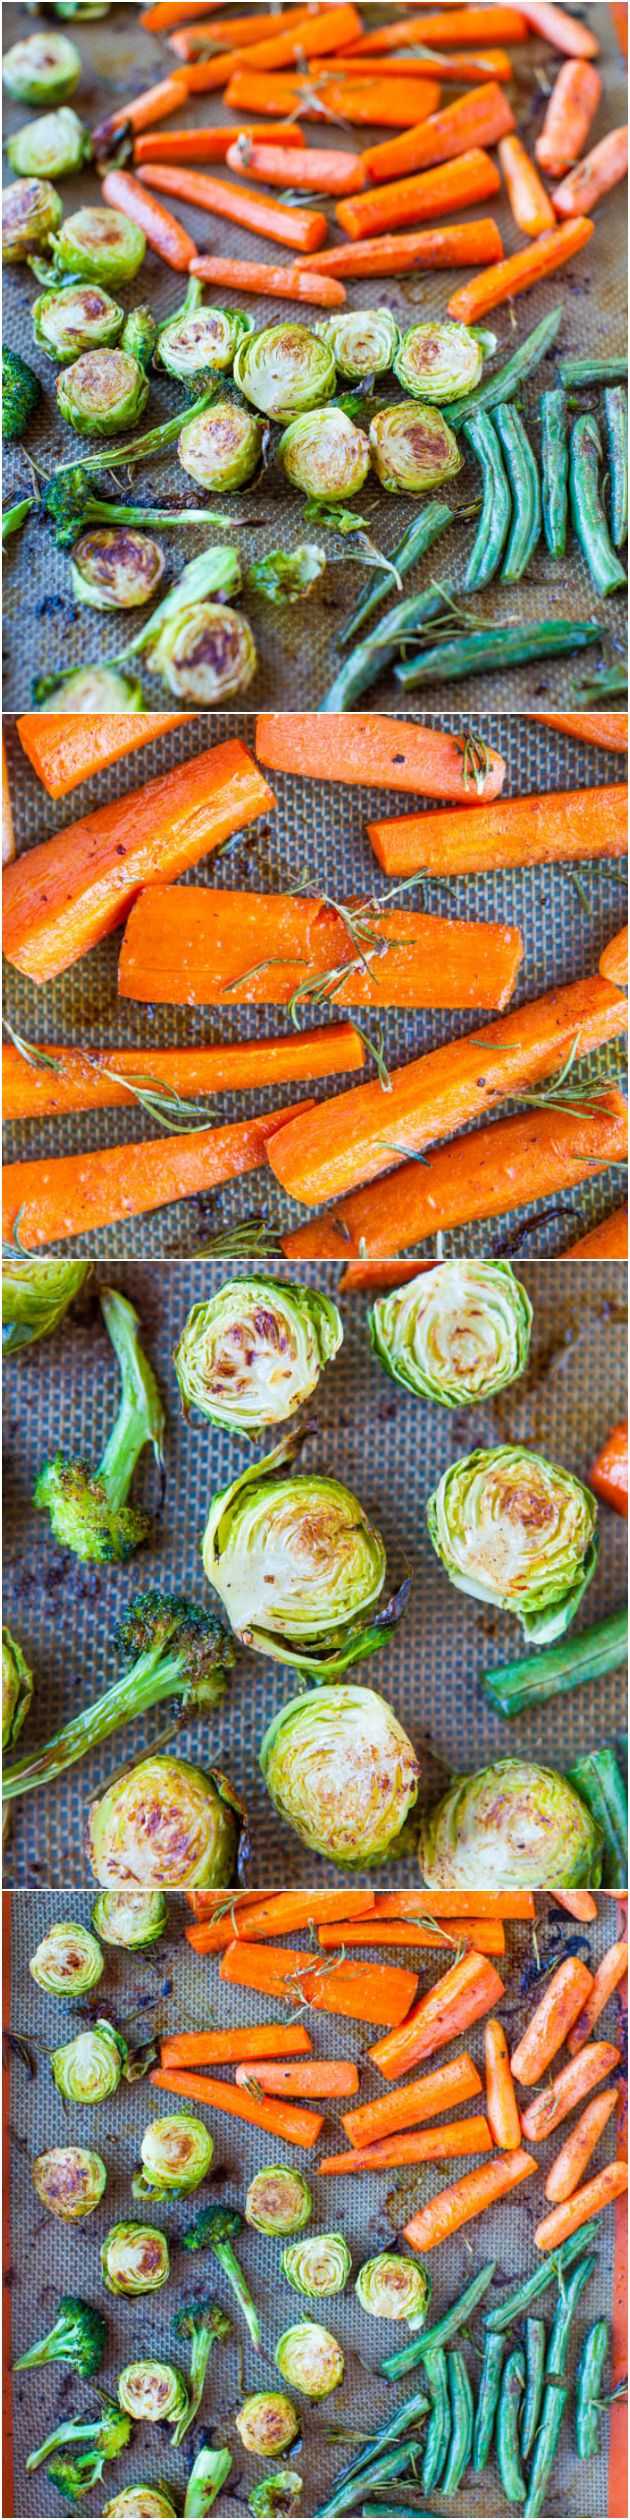 Lemon Rosemary Coconut Oil Roasted Vegetables (vegan, GF) - Trying to eat more veggies? Try this flavorful, satisfying & easy recipe made with healthy coconut oil!